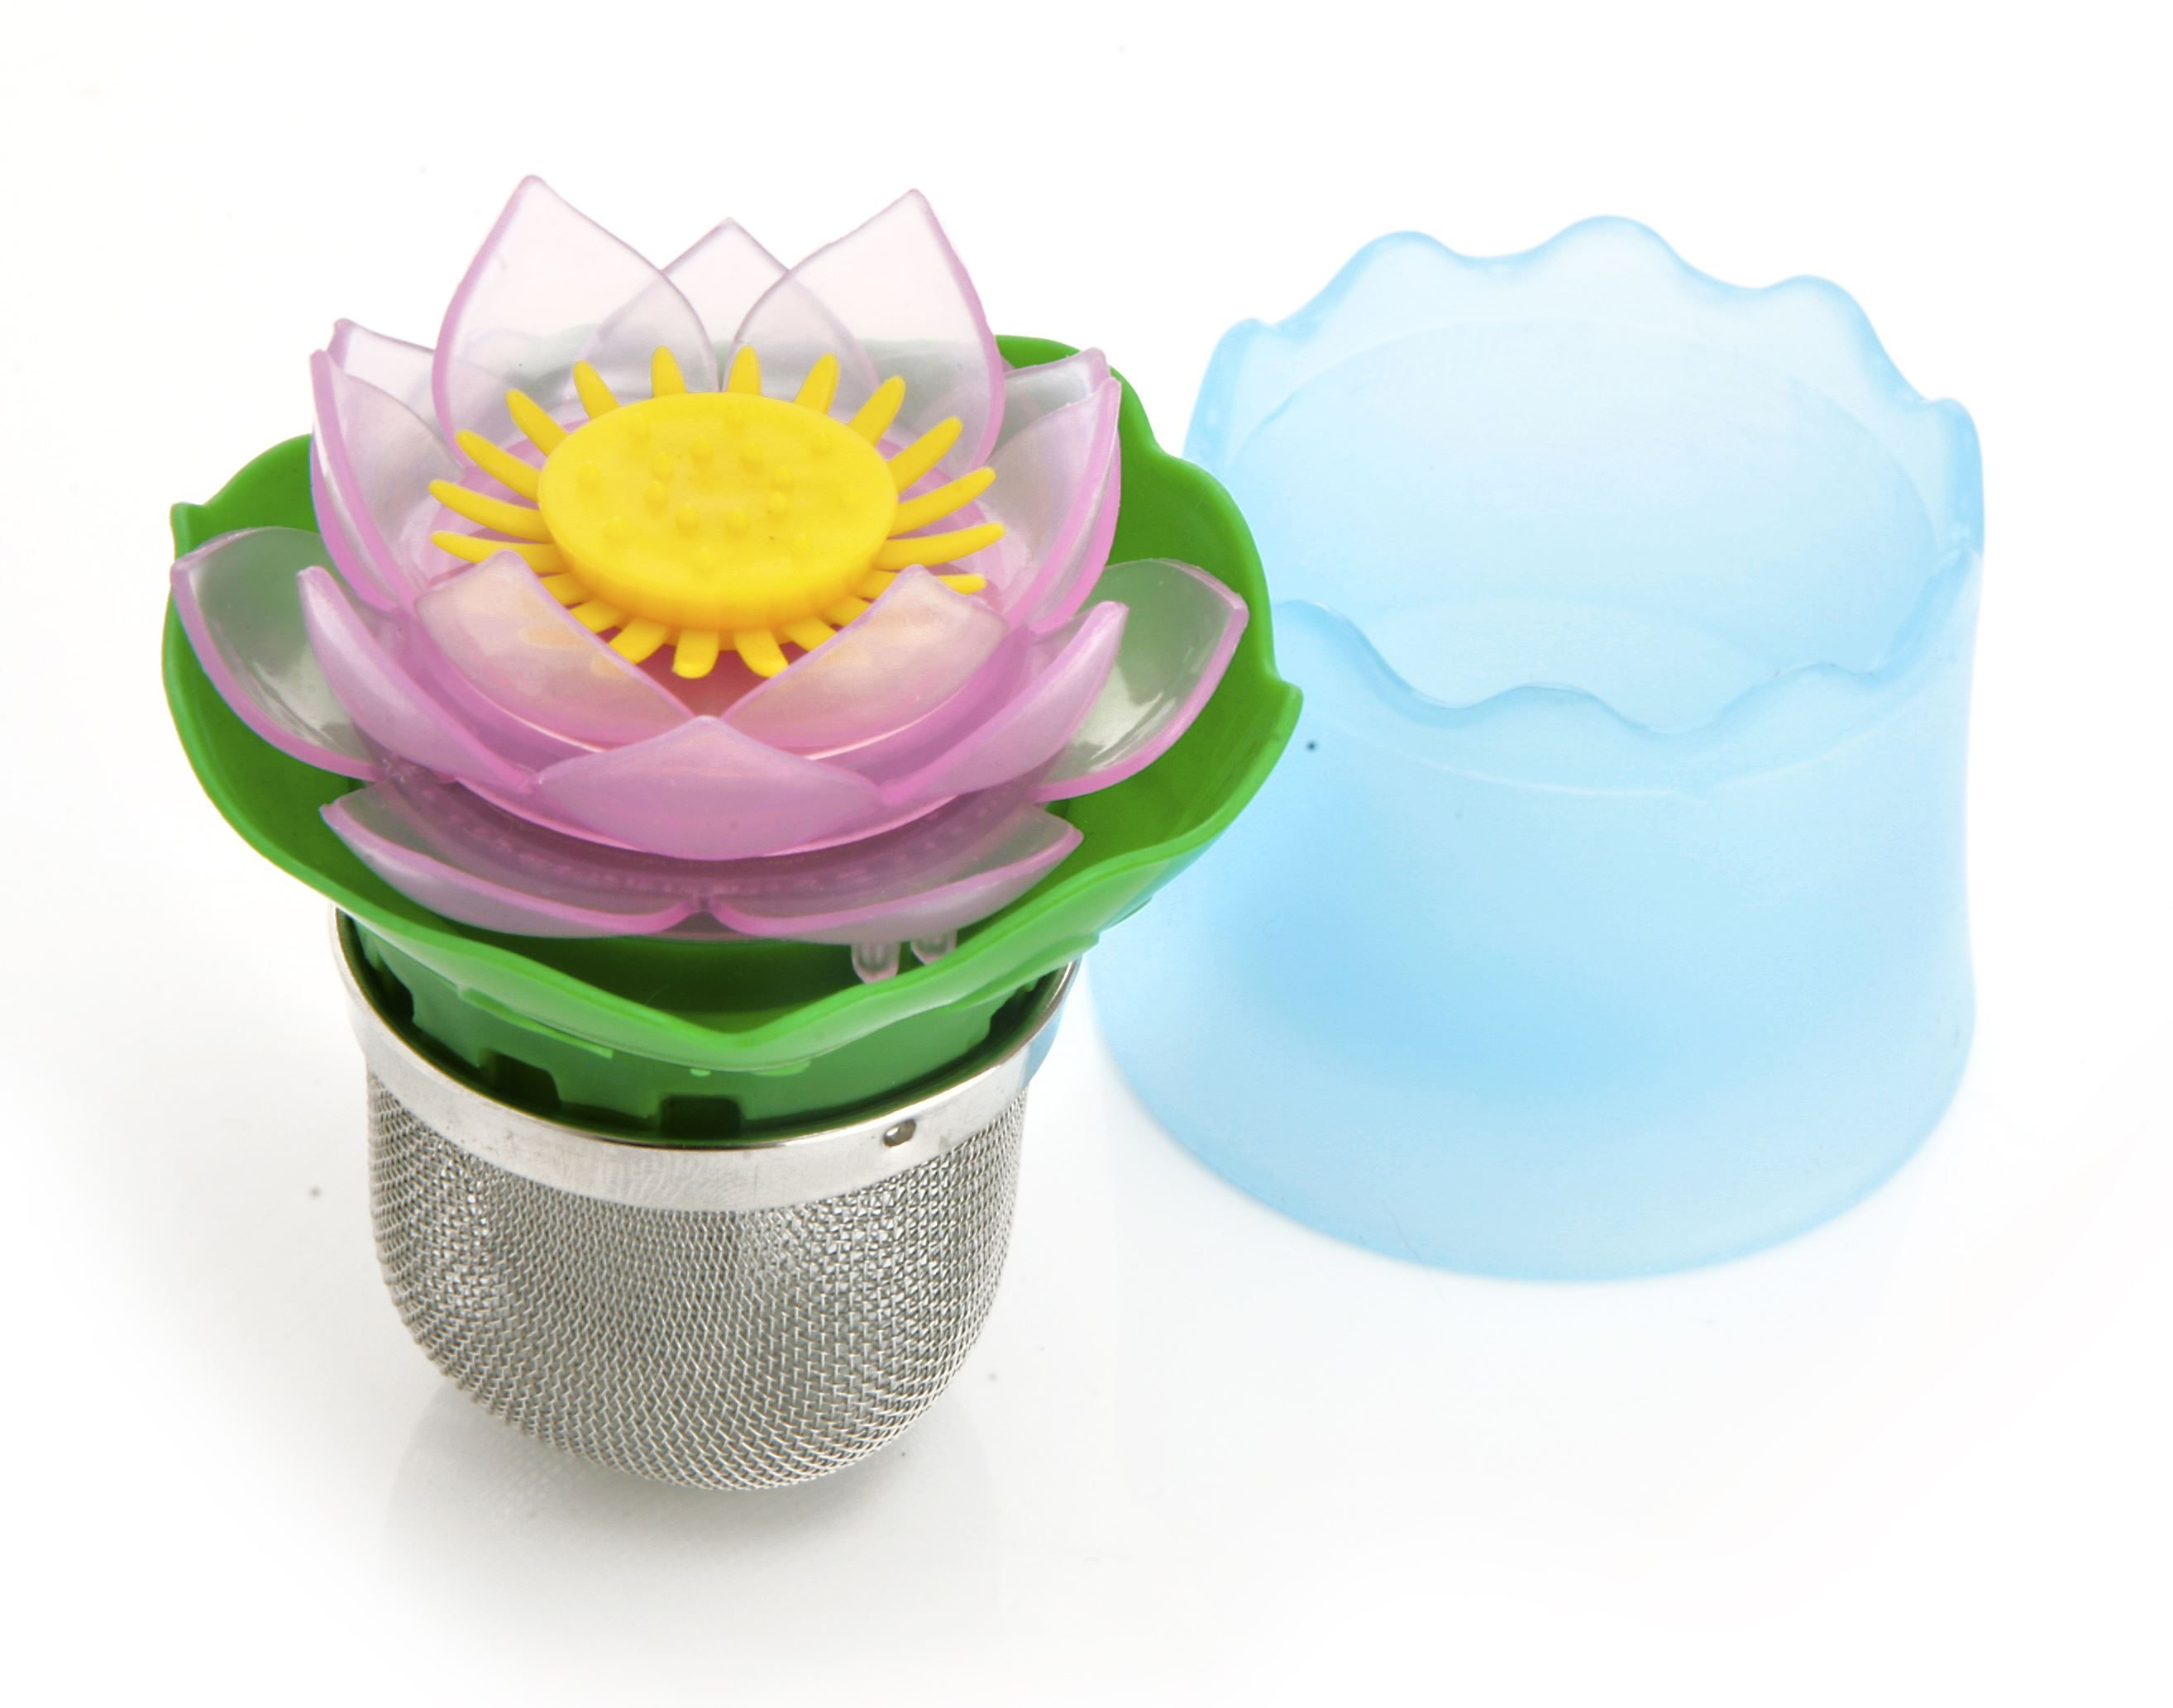 851047 - Lilly Pad Tea Infuser Stand